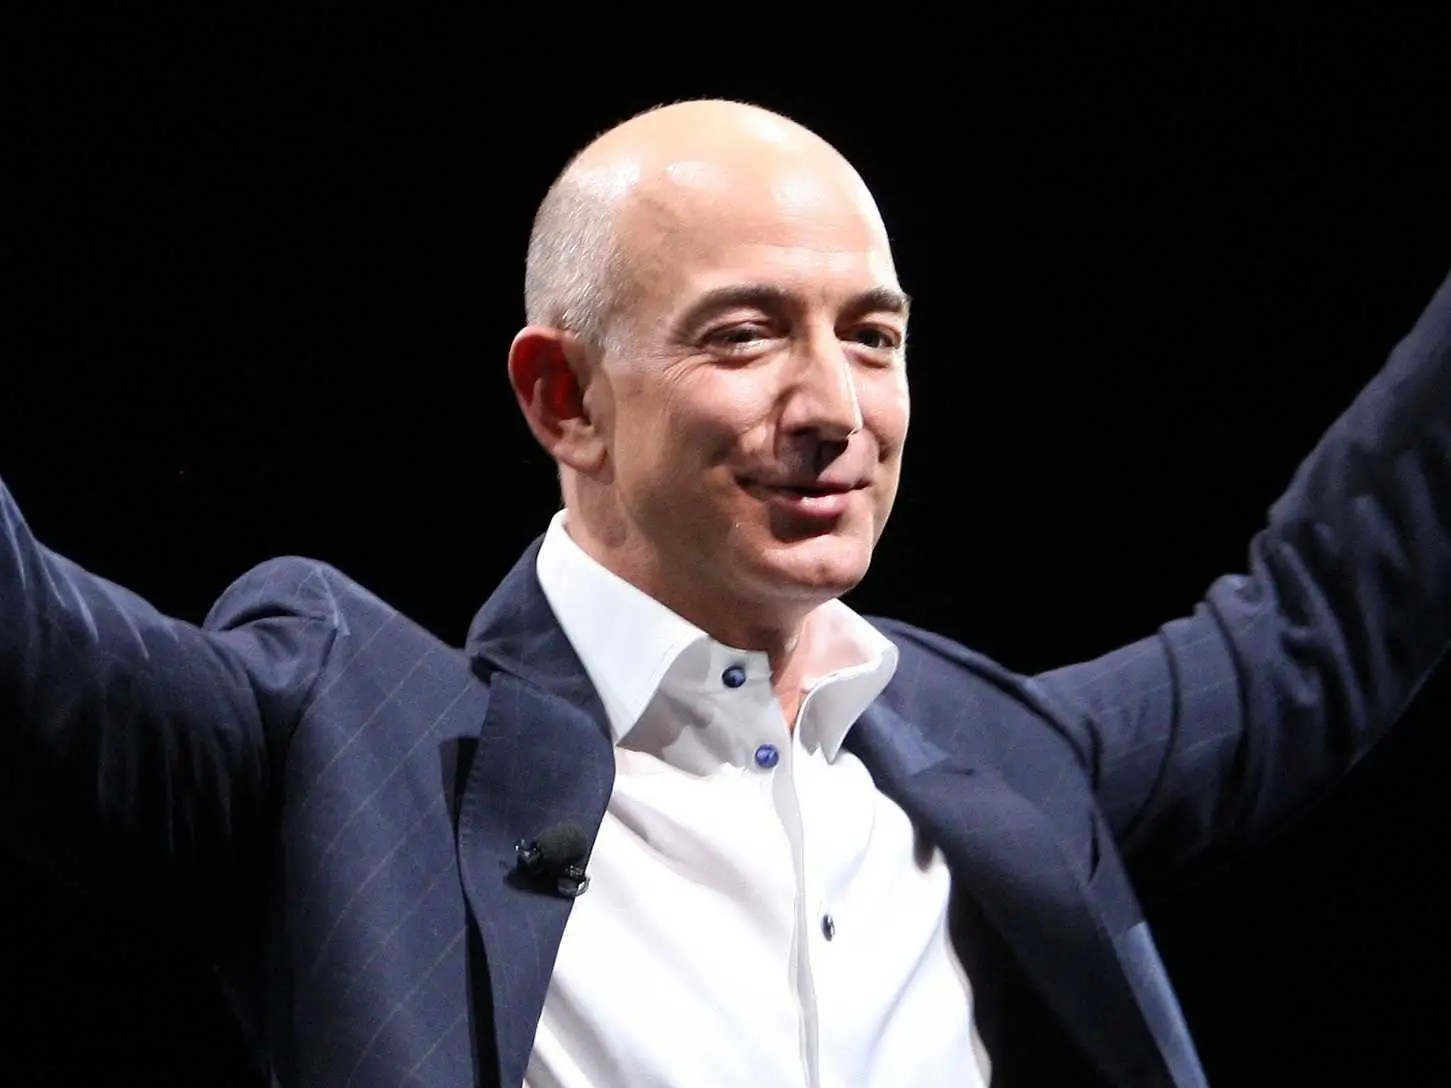 https://i2.wp.com/static1.businessinsider.com/image/5225ce5769bedd0c3feca9ea/jeff-bezos-finally-unveiled-his-plan-for-the-washington-post.jpg